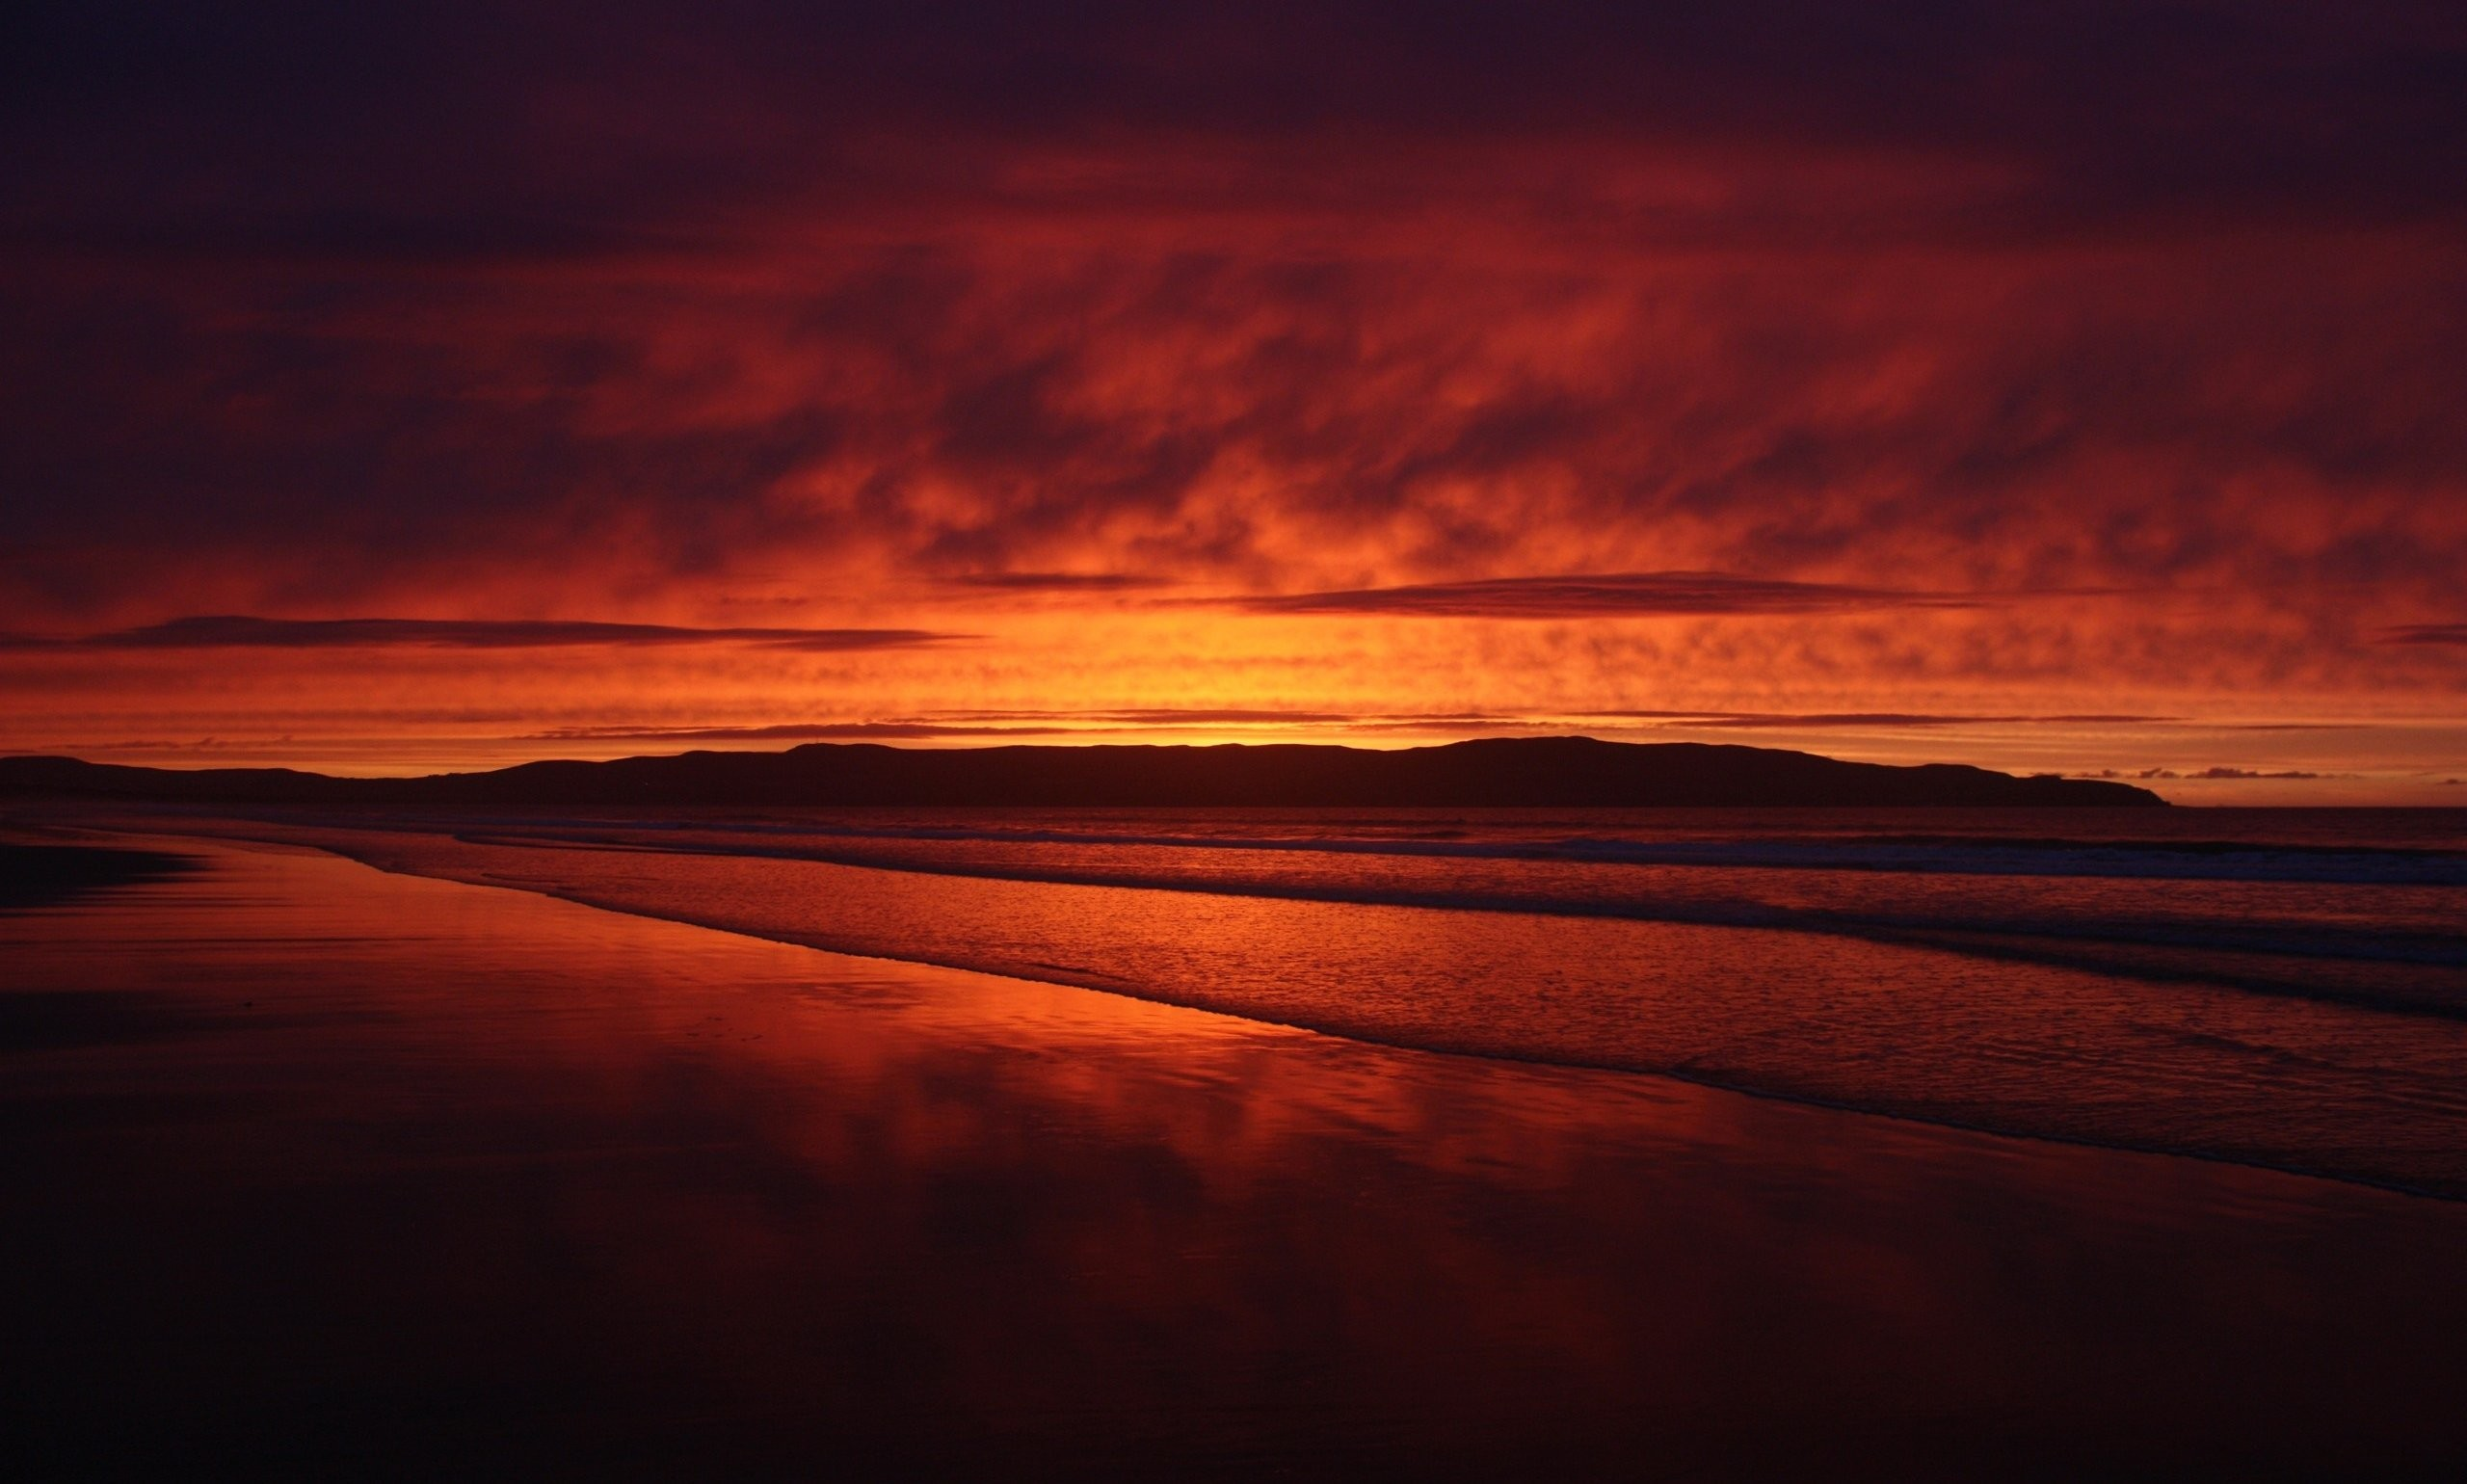 2560x1540 Backgrounds For Dark Sunset Beach Background 2560×1540